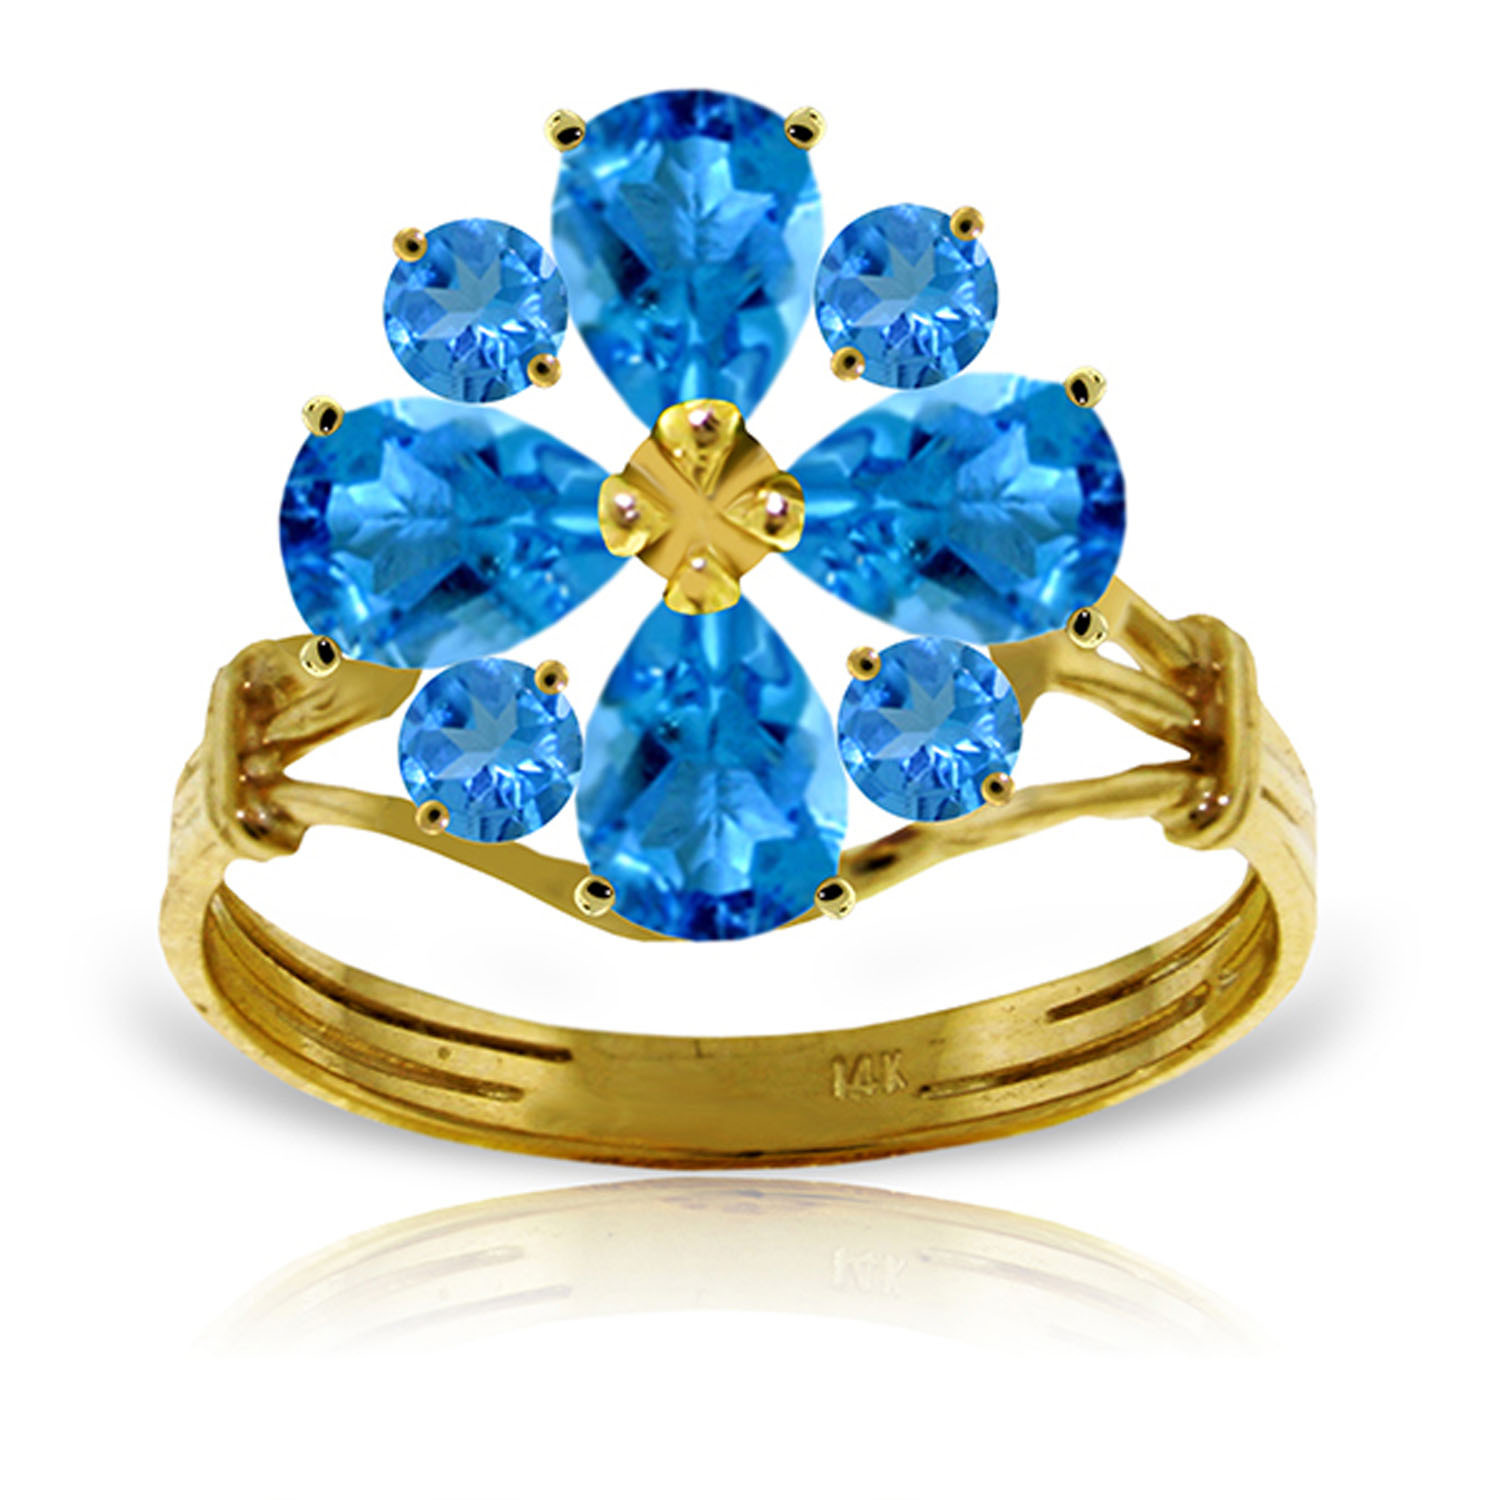 Brand New 2.43 Carat 14K Solid Gold Love Theme Blue Topaz Ring